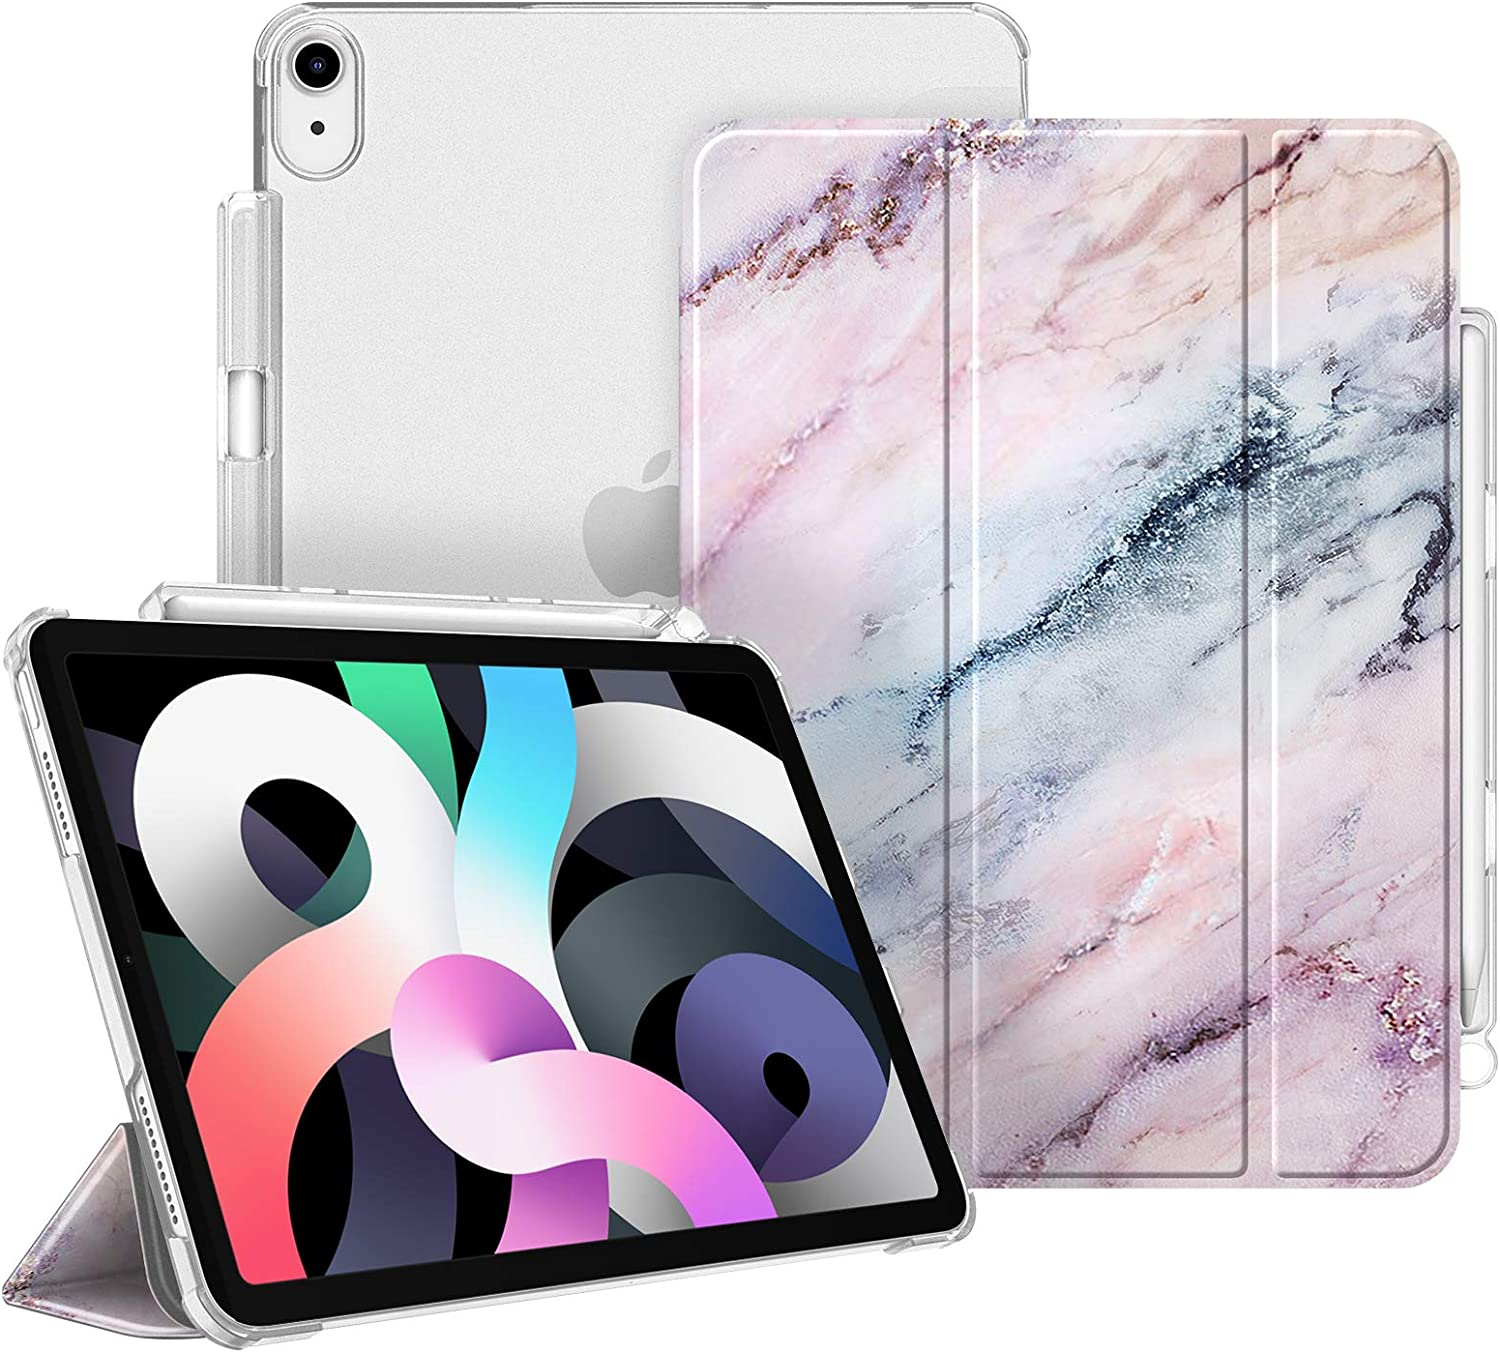 Fintie Case for iPad Air 4 10.9 Inch 2020 with Pencil Holder - SlimShell Lightweight Stand Case with Translucent Frosted Back Cover, Auto Wake/Sleep for iPad Air 4th Generation, Marble Pink